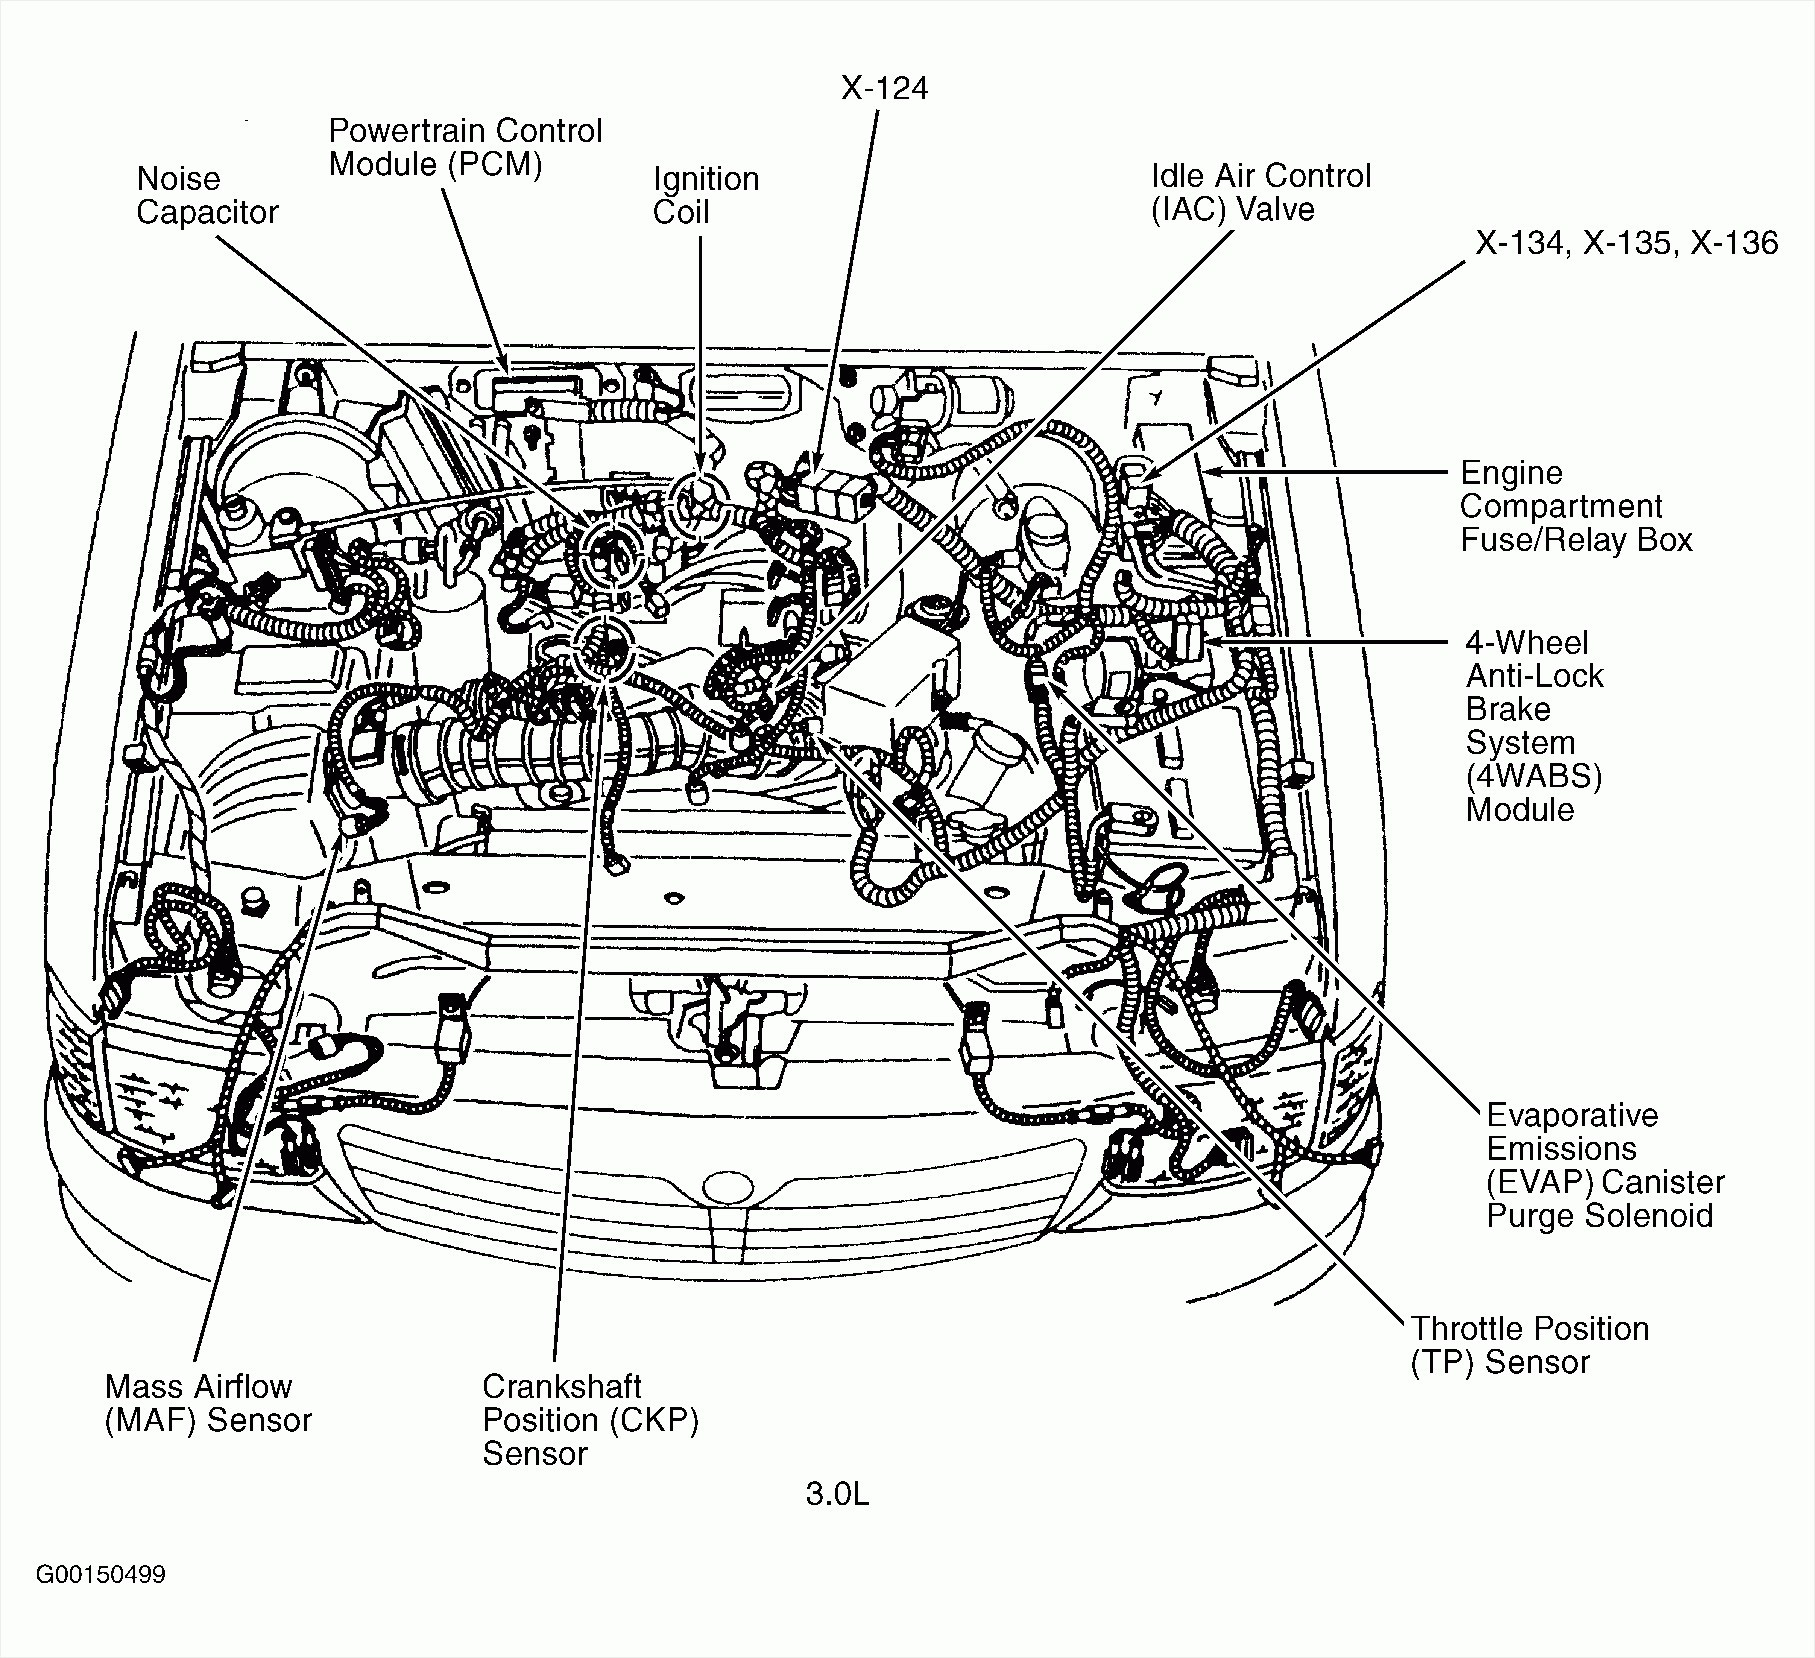 hight resolution of chevy 4 3 engine diagram wiring diagram expert 4 3 v6 engine diagram wiring diagram datasource